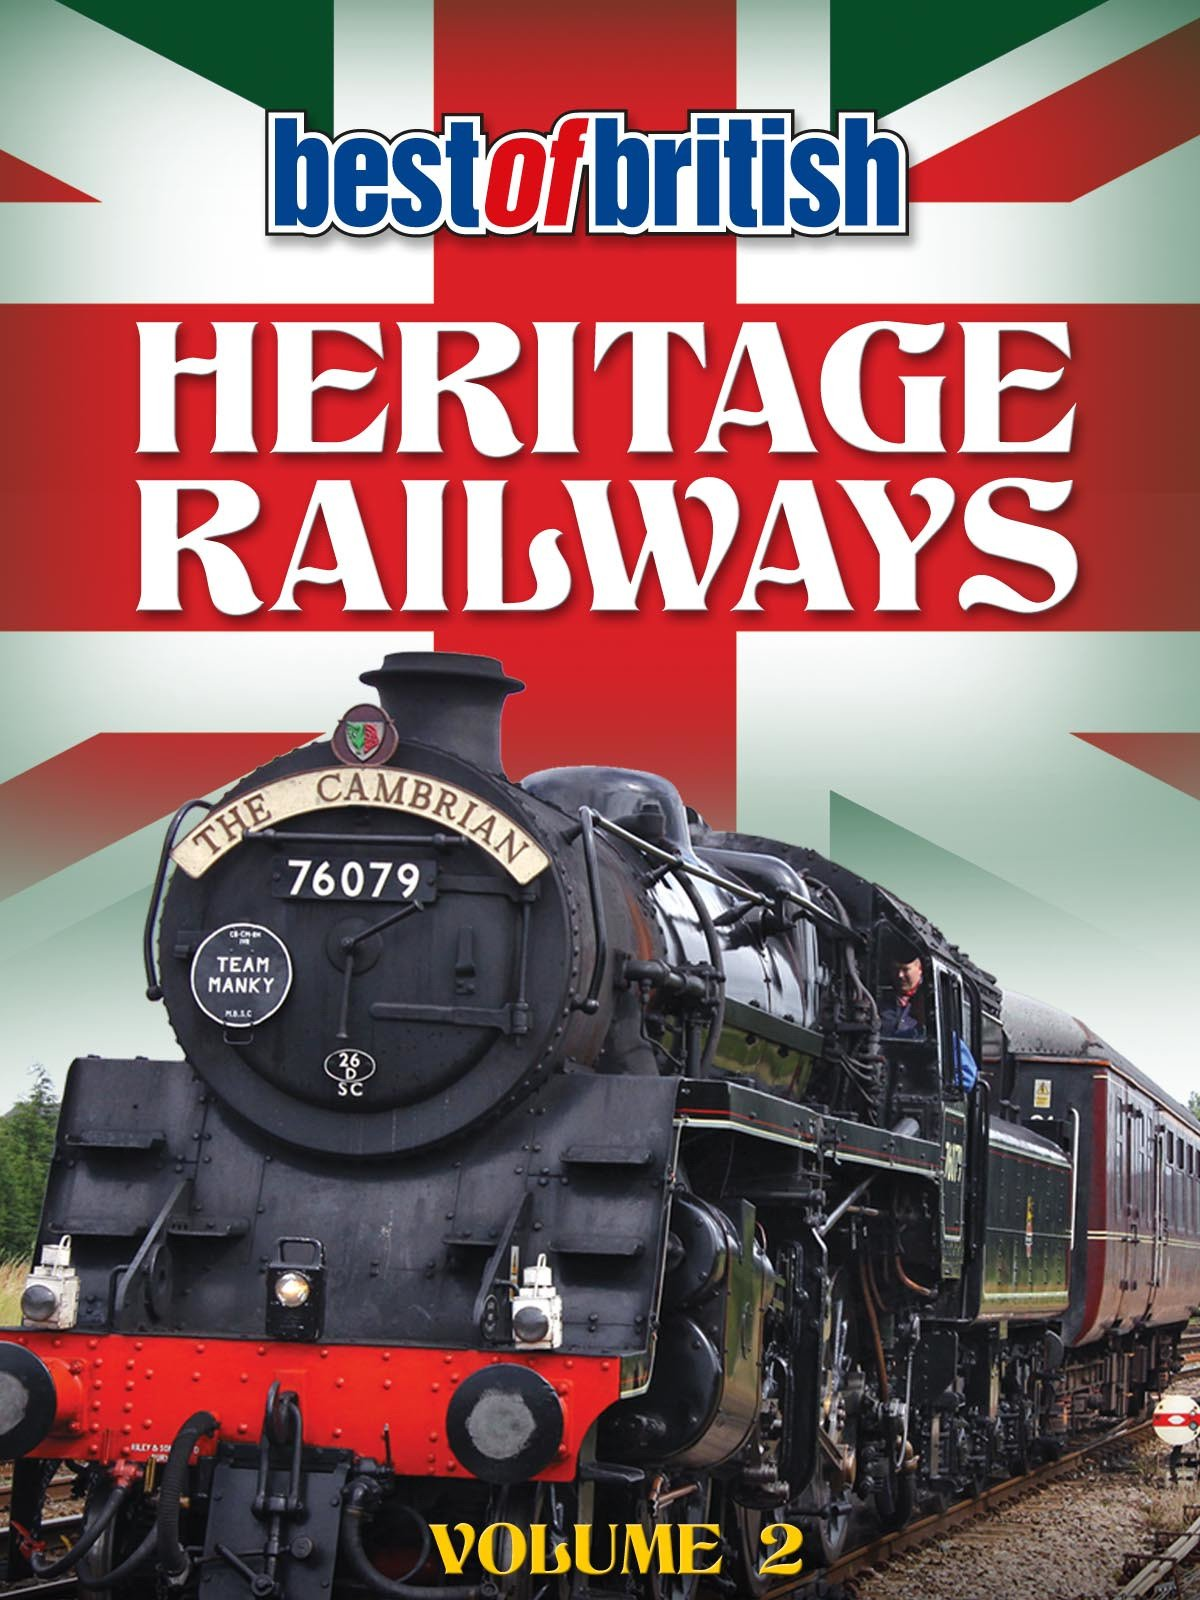 Best of British Heritage Railways Volume 2